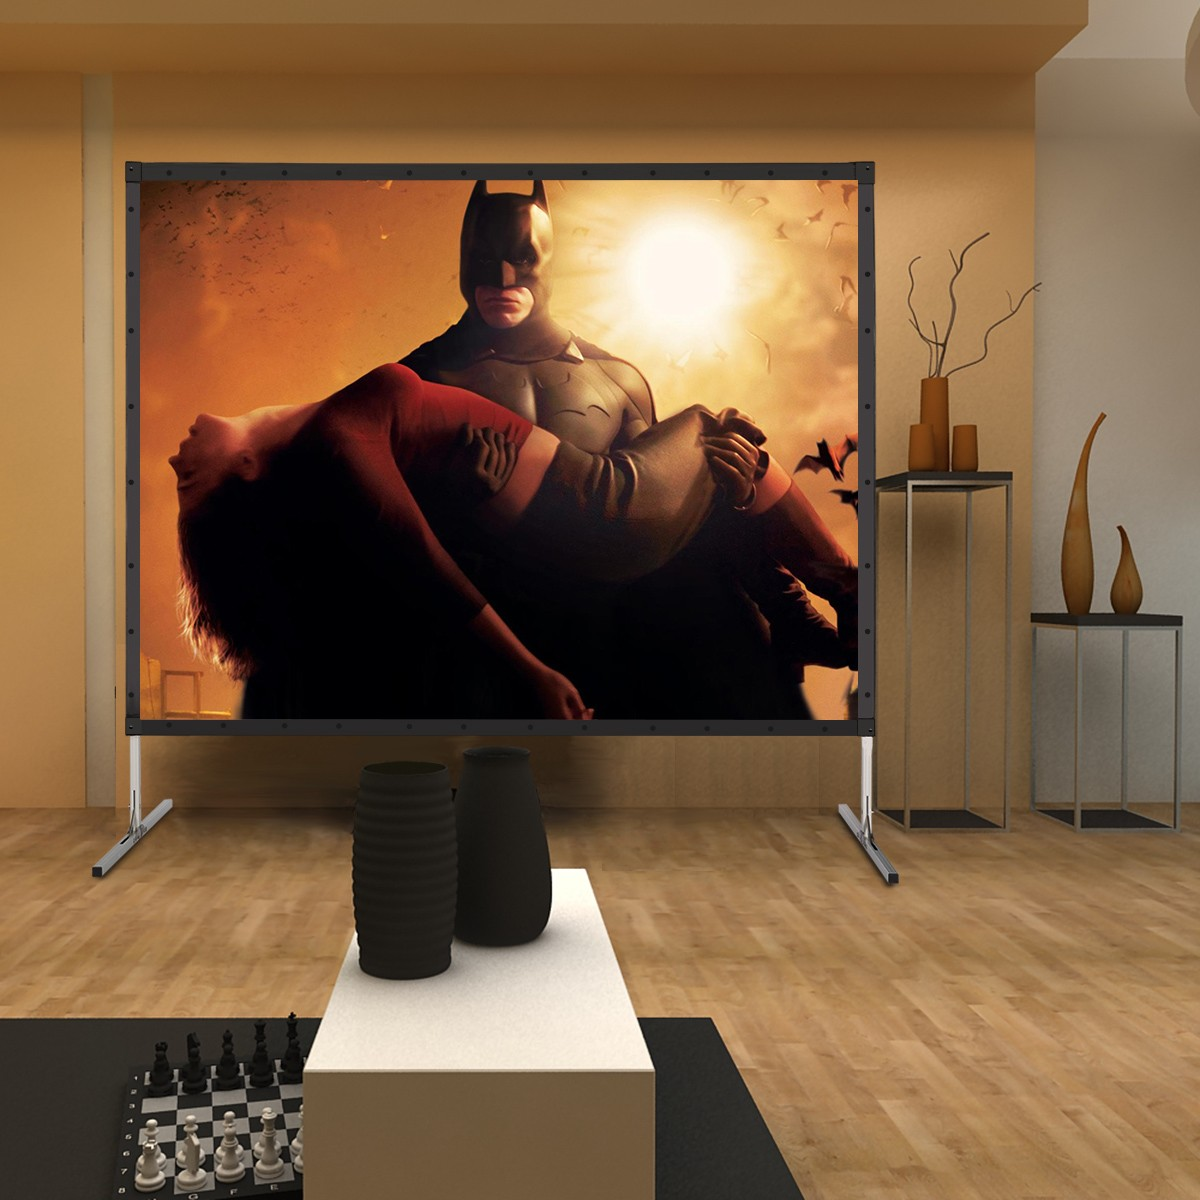 Excelvan 4K Ultra HD Movie Theater Fast-Fold Projector Screen 120 inch 4:3 with Stand Legs and Carry Bag For Front Projection